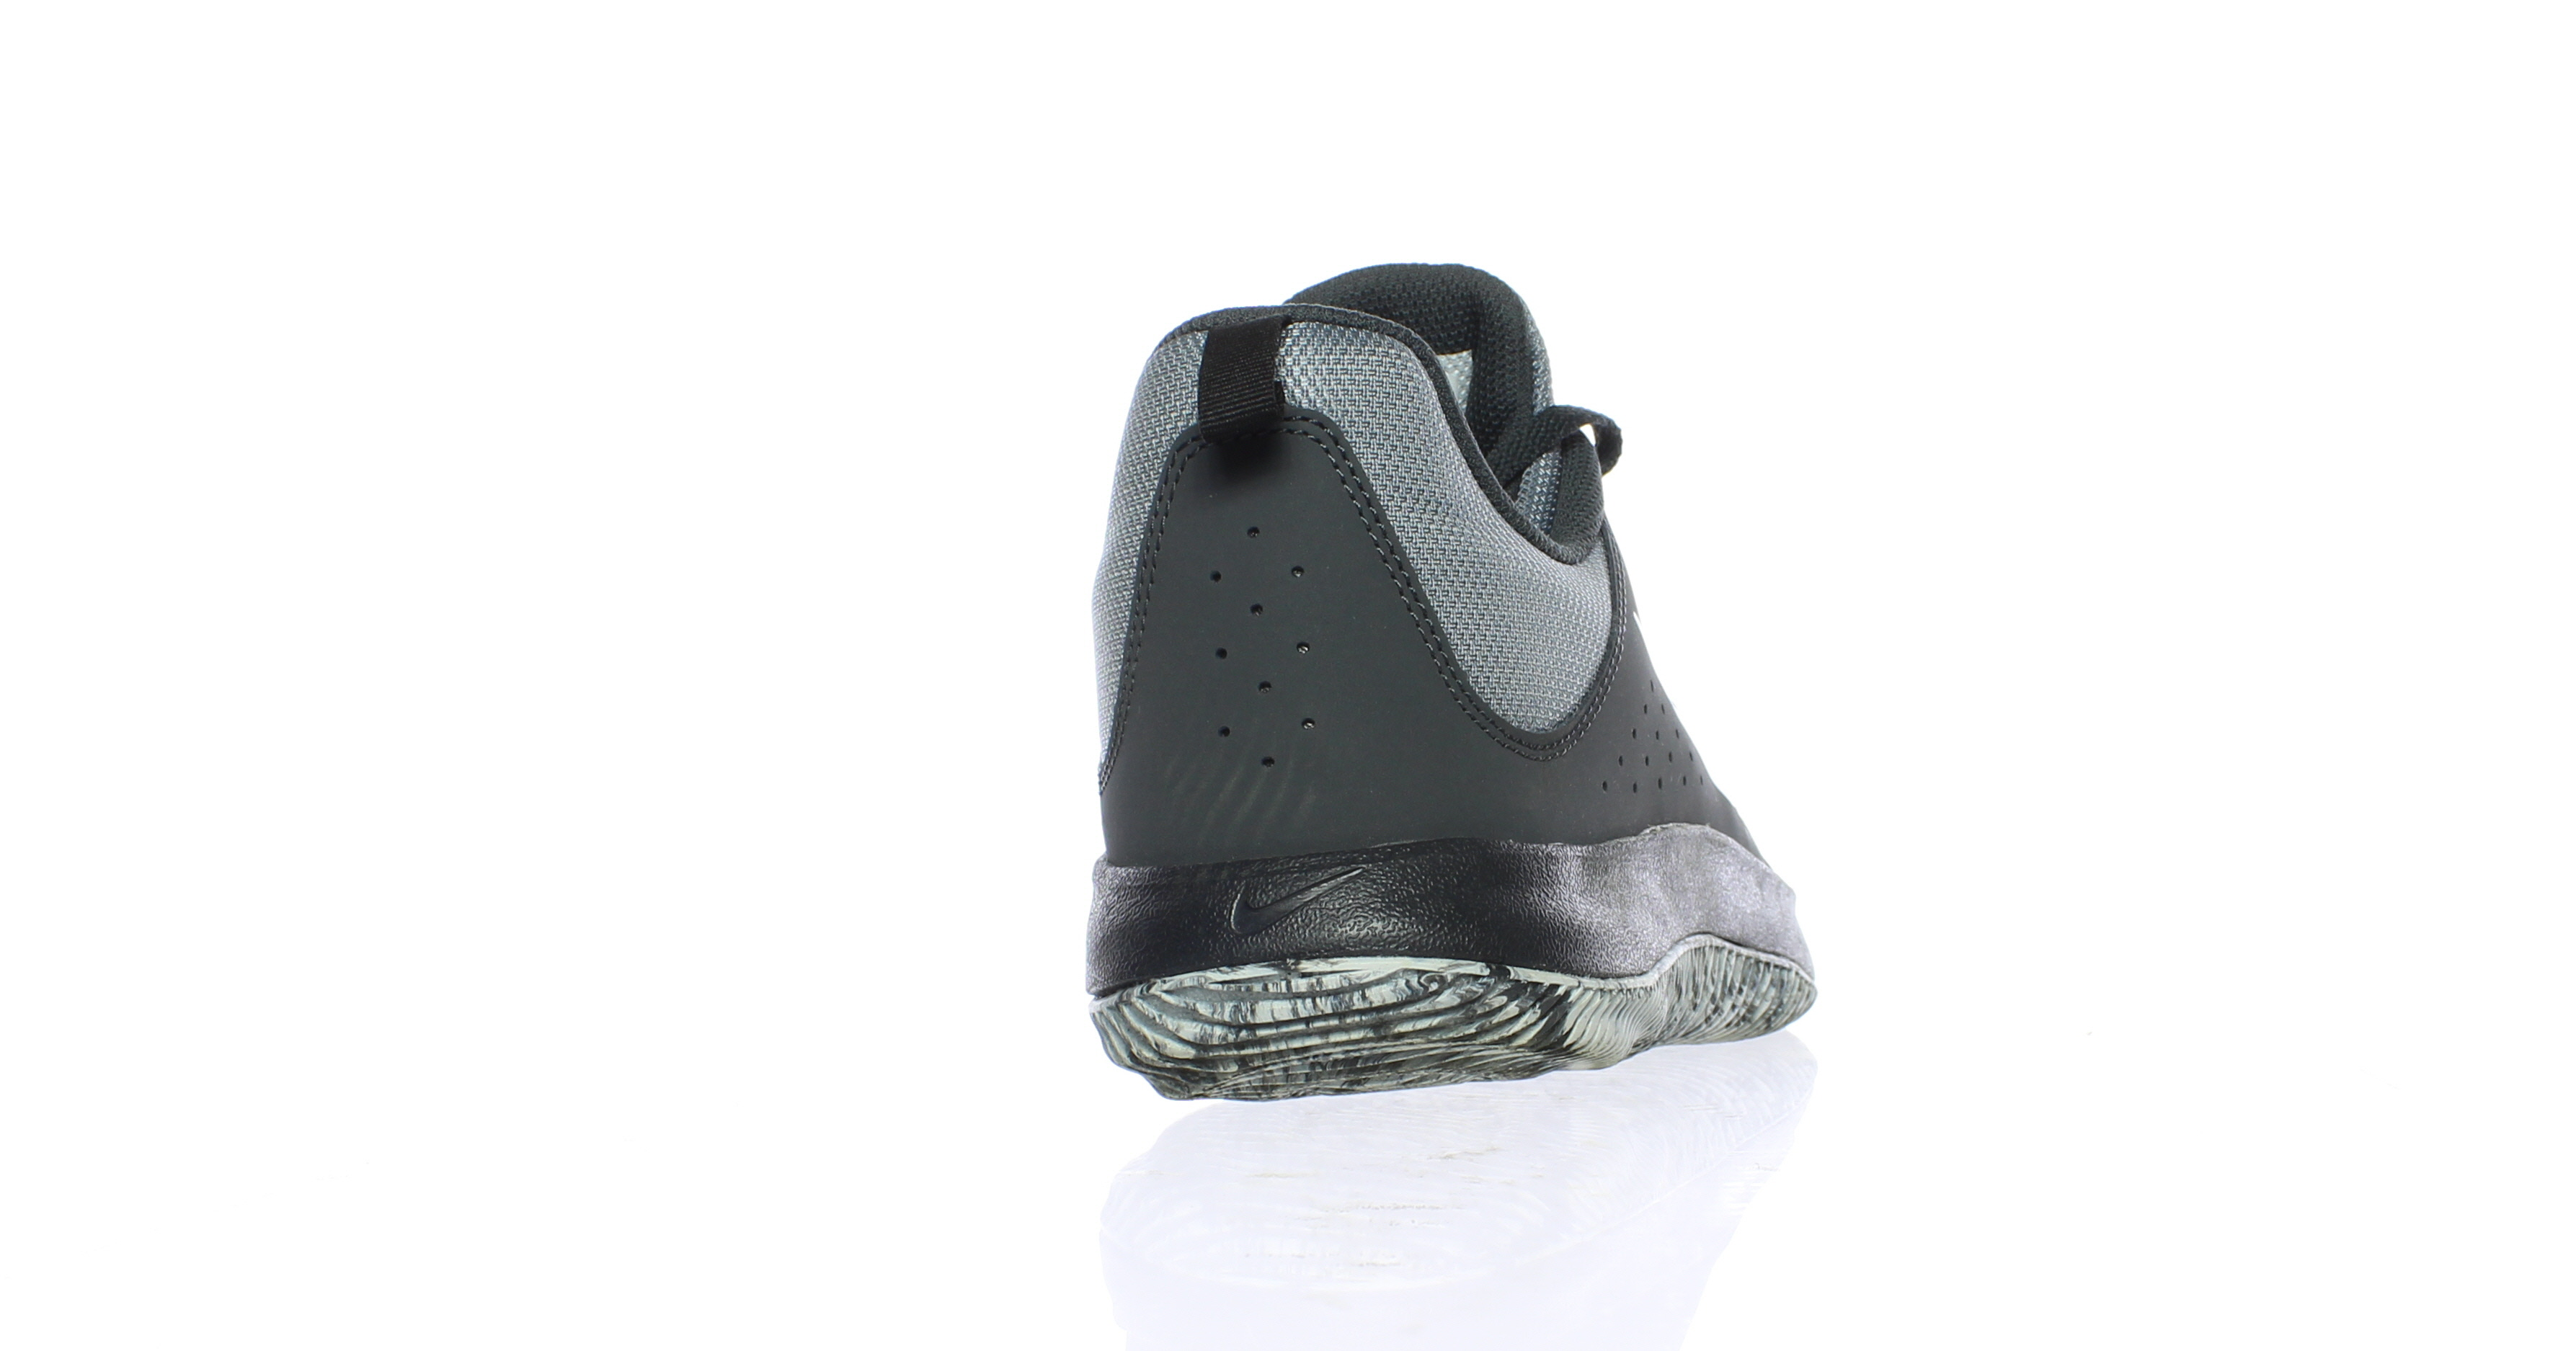 huge discount d58c0 066b0 ... Nike Mens Fly By Gray Running Shoes Shoes Shoes Size 9 (43985) ad35a0  ...